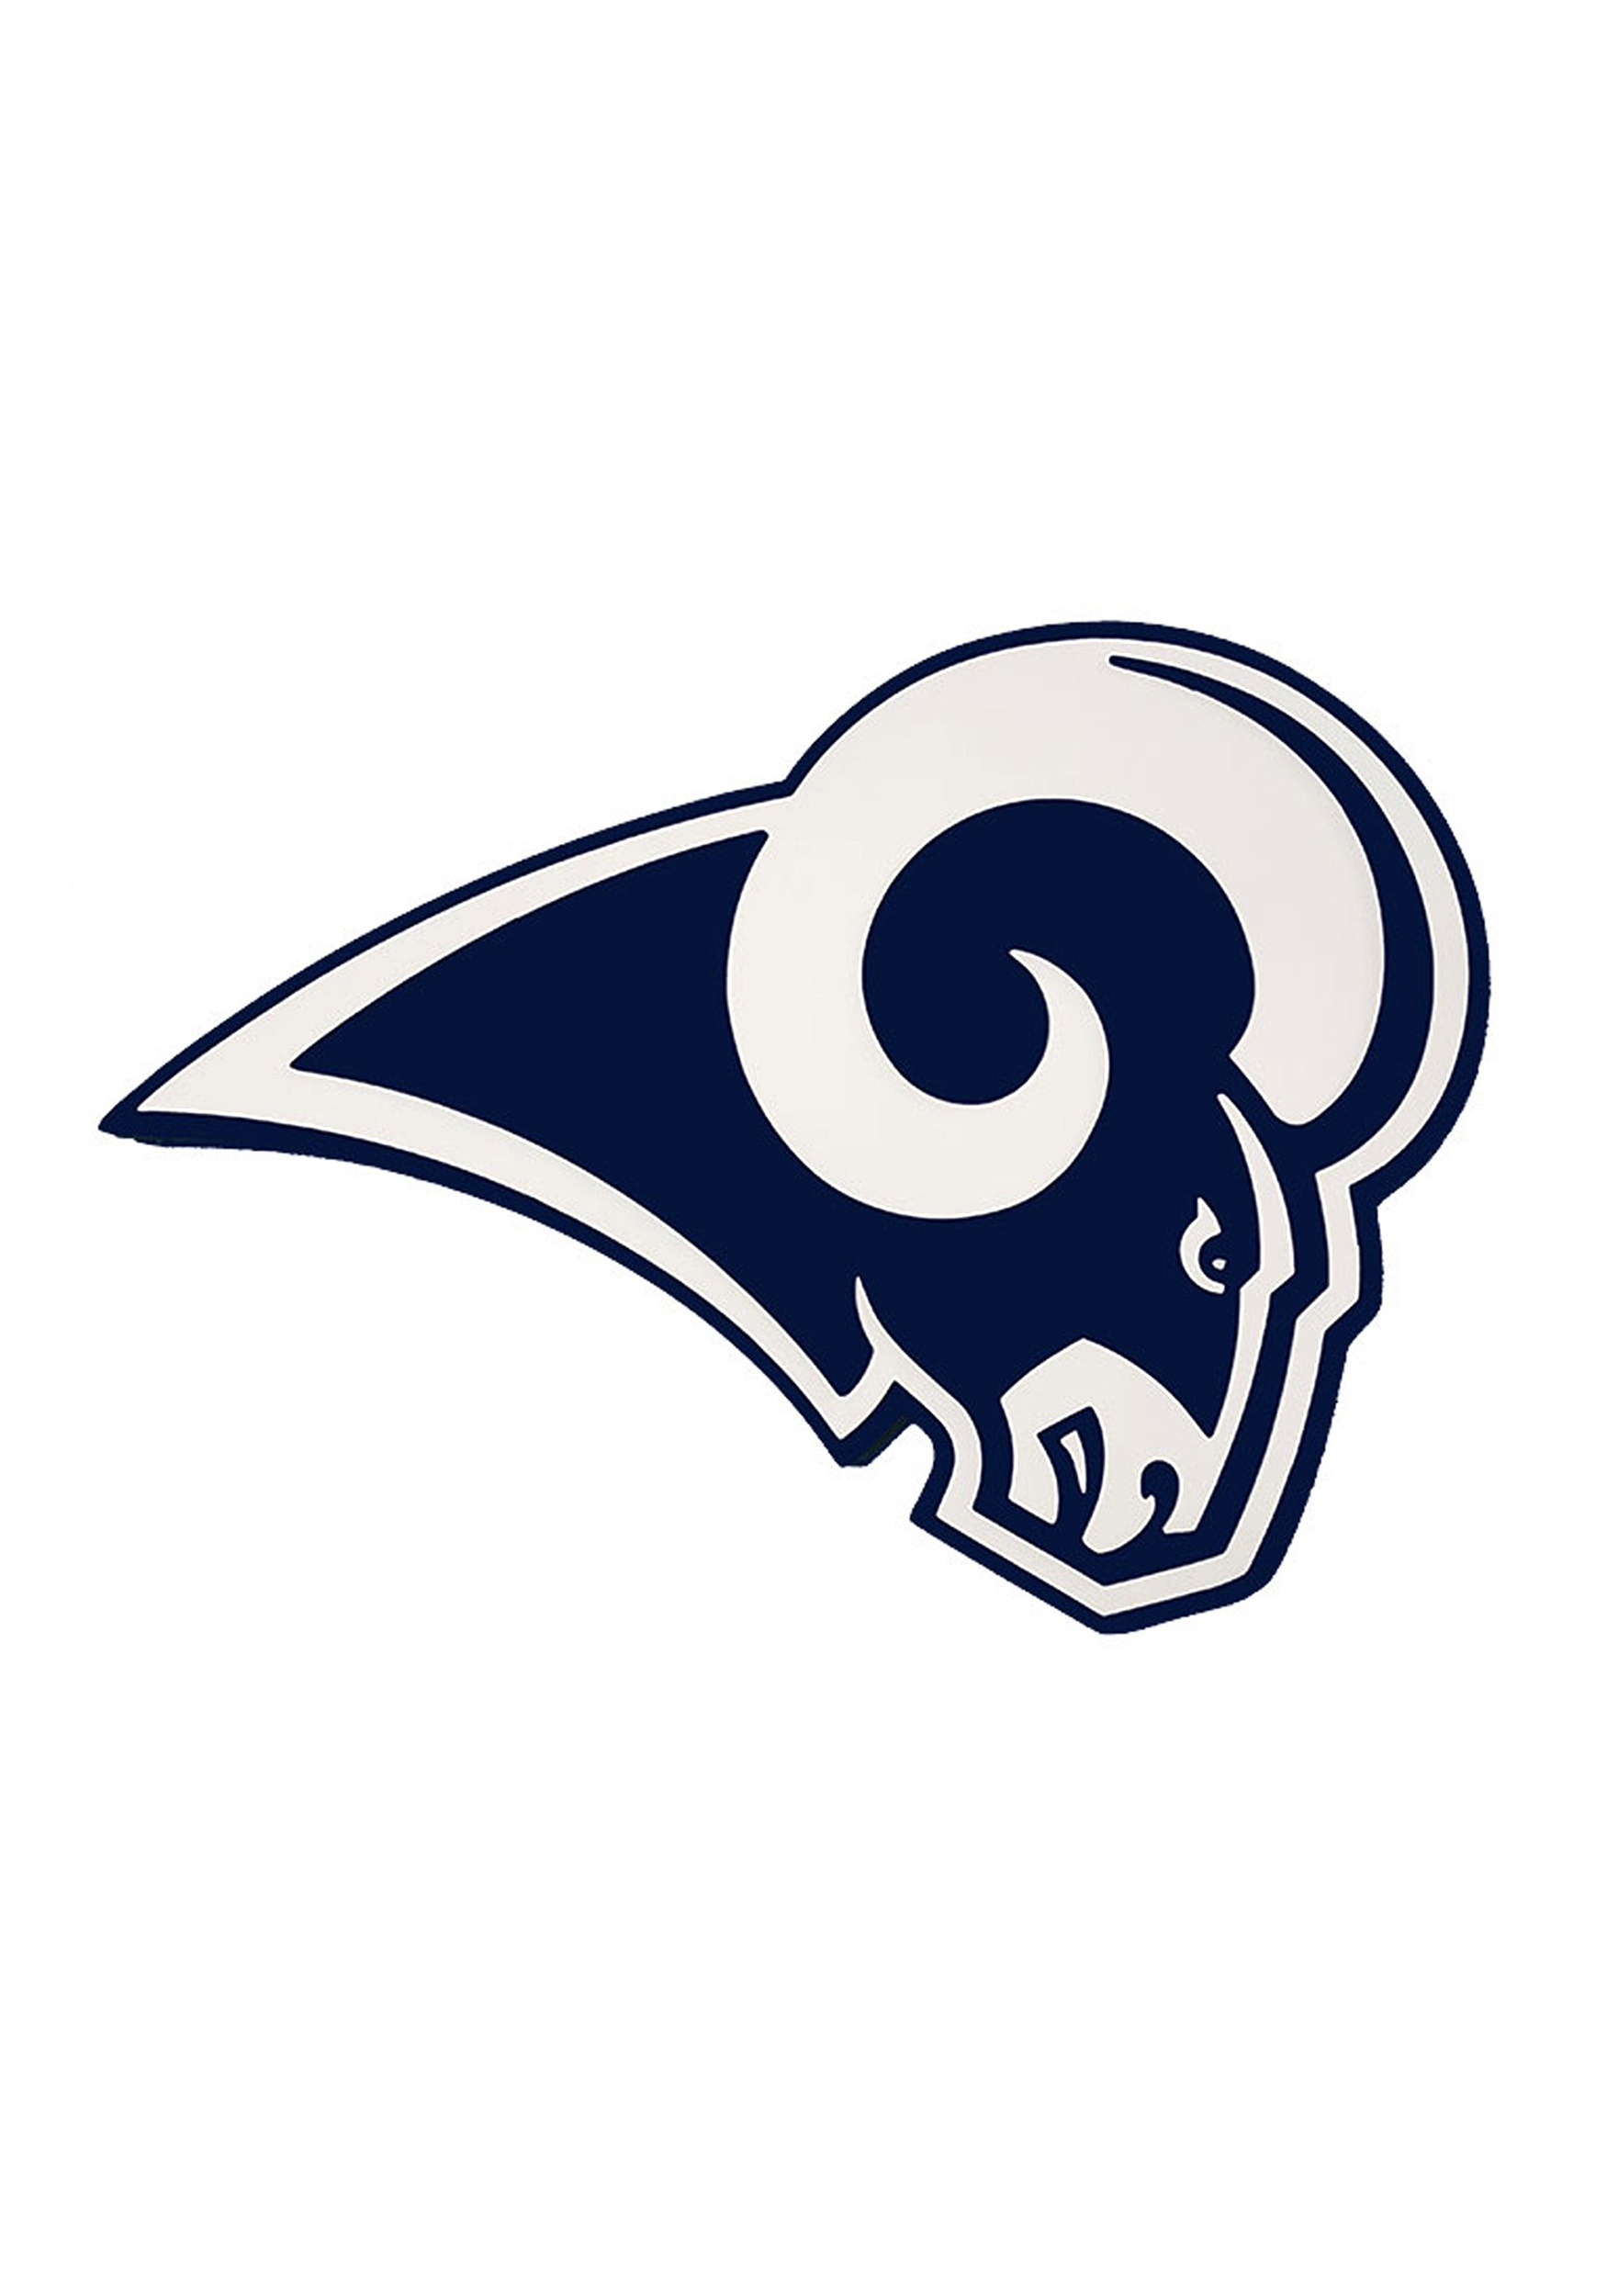 eb679262 Los angeles rams logo